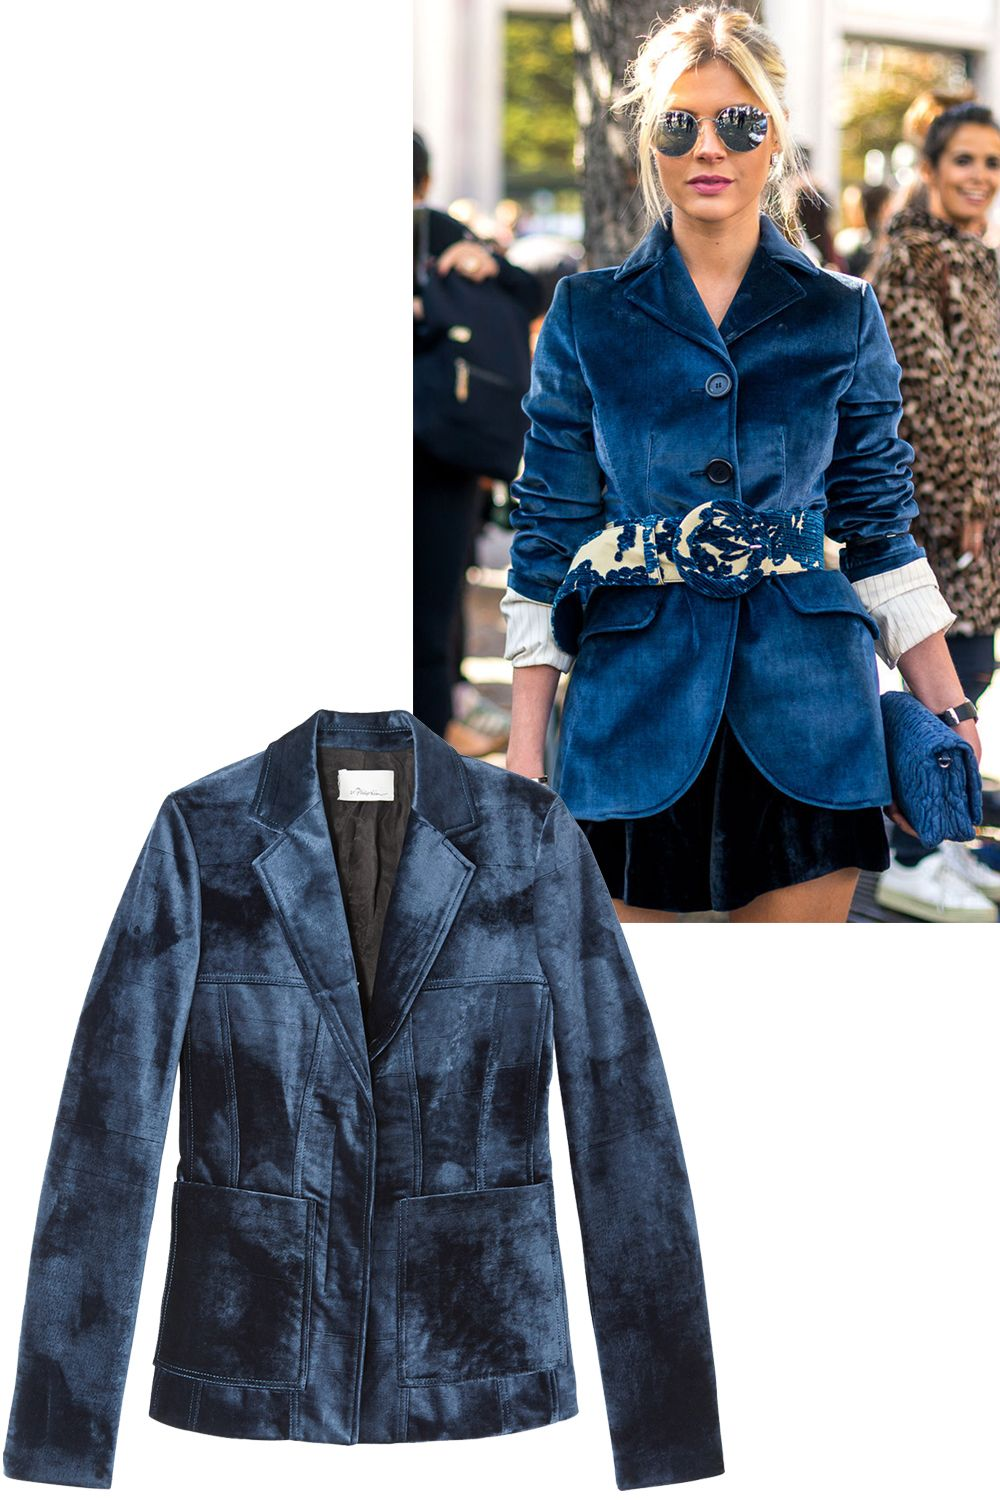 "<p>Velvet had&nbsp&#x3B;a major moment in all the&nbsp&#x3B;fashion capitals, and the blazer silhouette was a favorite.&nbsp&#x3B;</p><p><em data-redactor-tag=""em"" data-verified=""redactor"">3.1 Phillip Lim blazer, $1,295, <strong data-redactor-tag=""strong"" data-verified=""redactor""><a href=""https://shop.harpersbazaar.com/0-9/31-phillip-lim/velvet-moto-jacket-10308.html"" target=""_blank"">shopBAZAAR.com</a></strong>.&nbsp&#x3B;</em></p>"